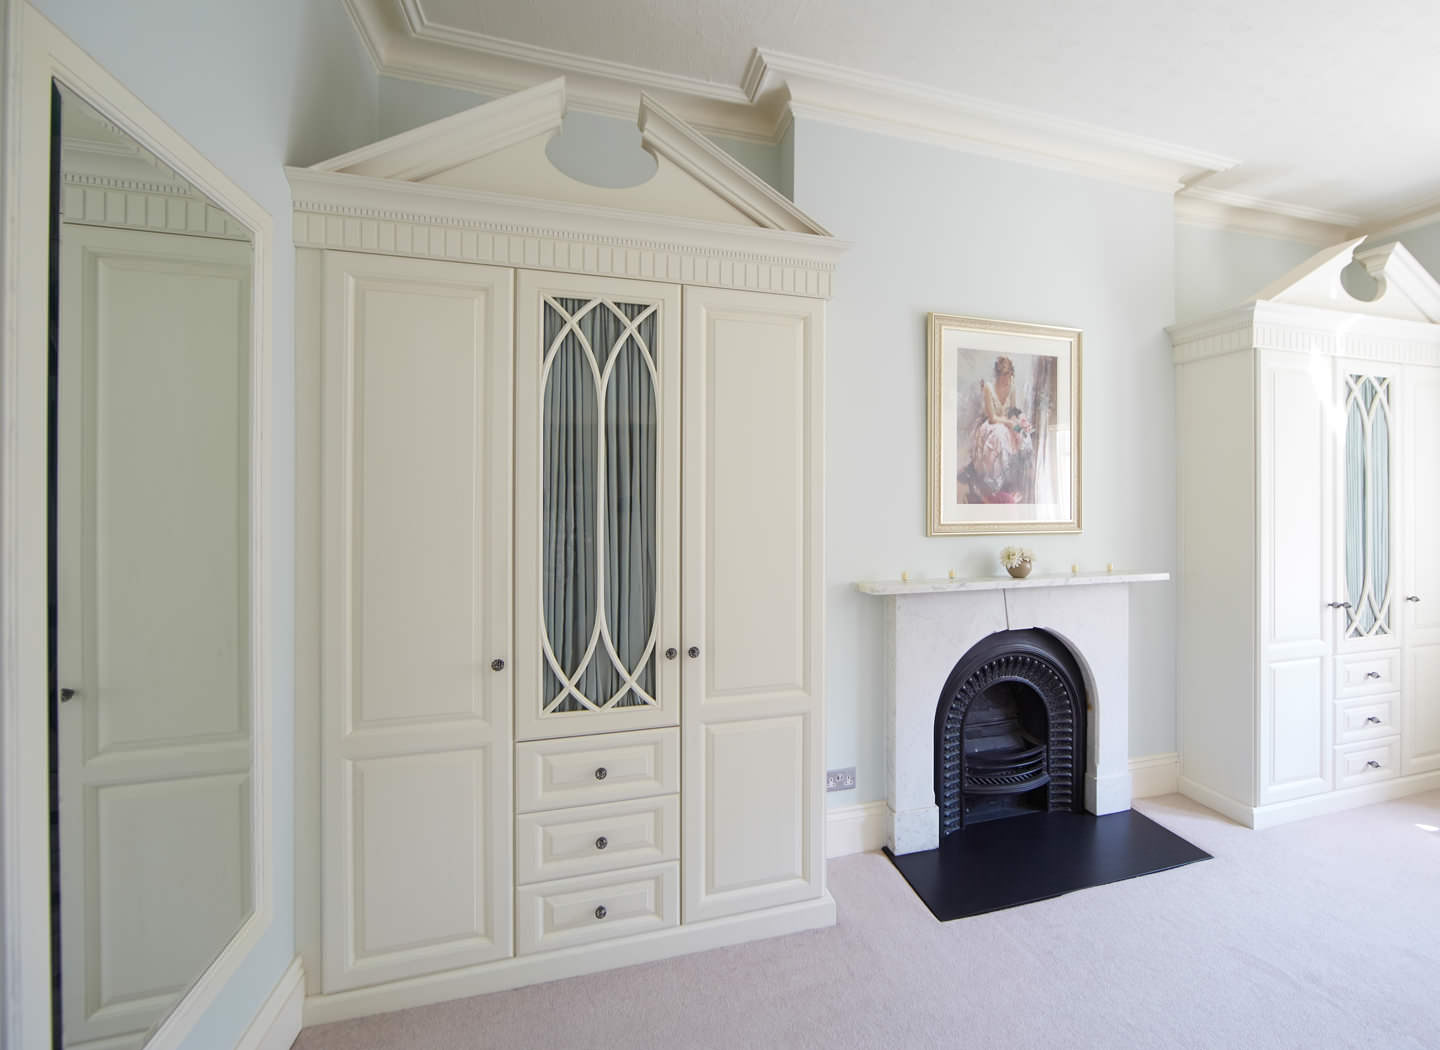 Case study showing bedroom furniture in bespoke colour wash